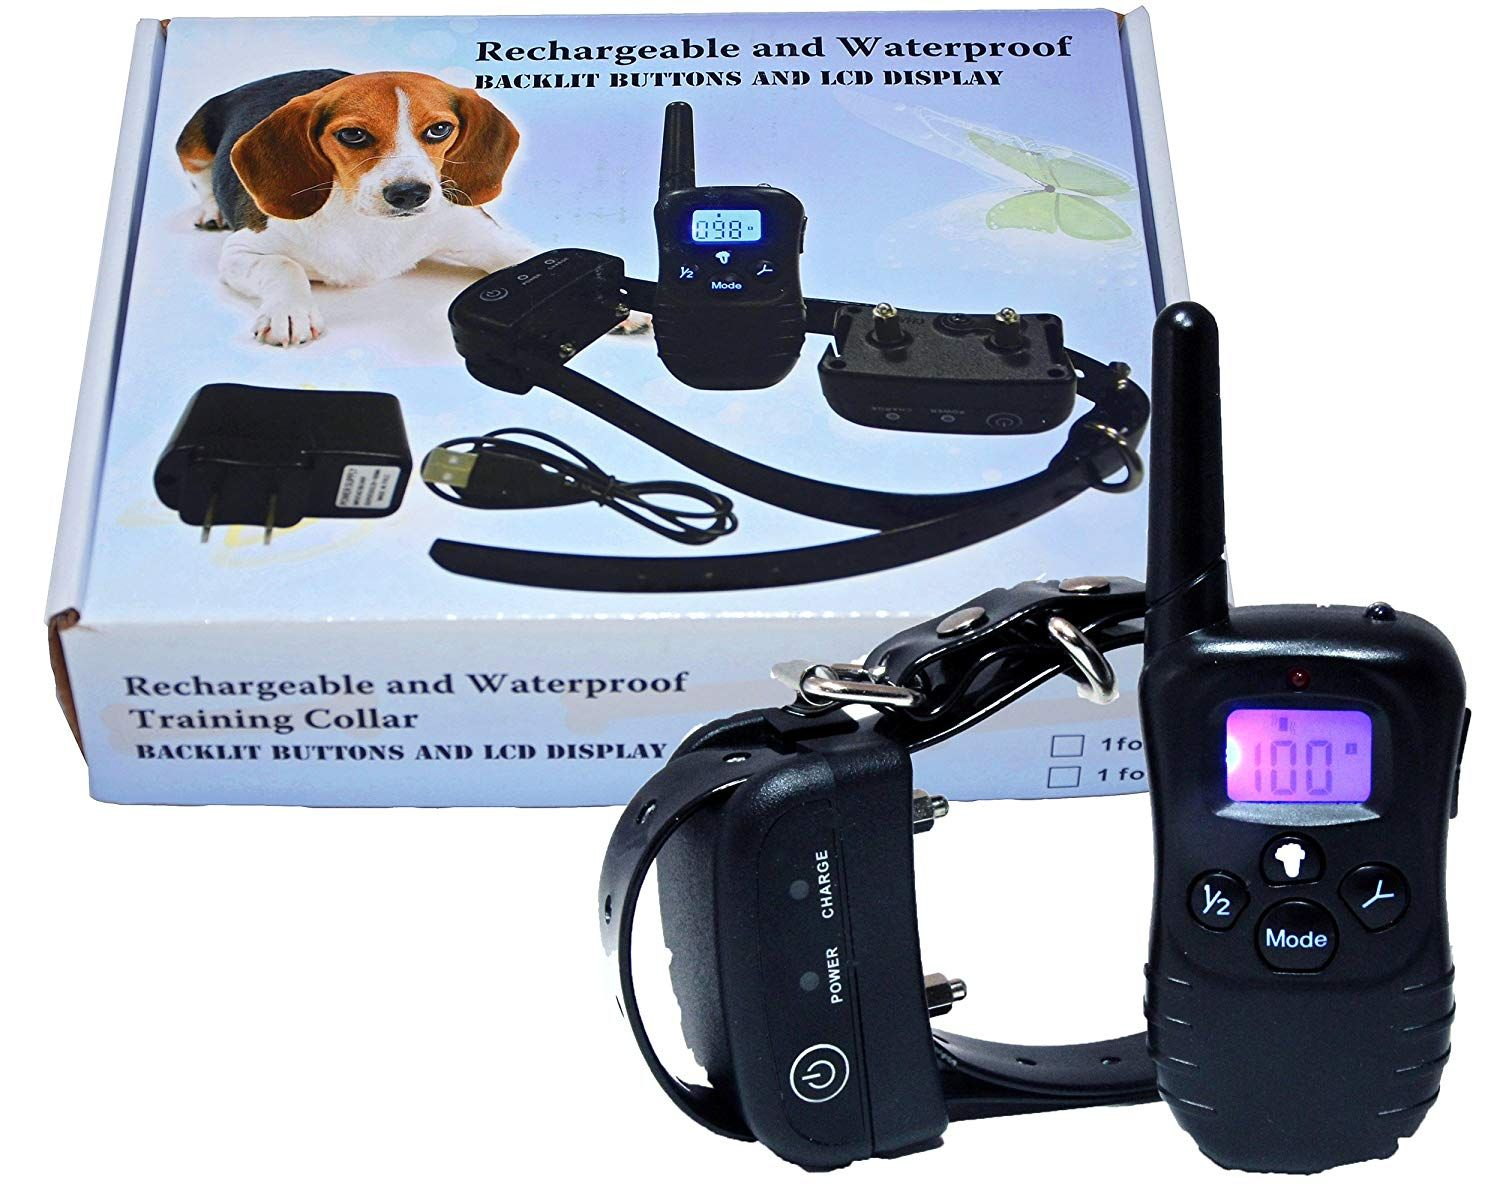 Fully Submersible Waterproof And Rechargeable Remote Dog Training